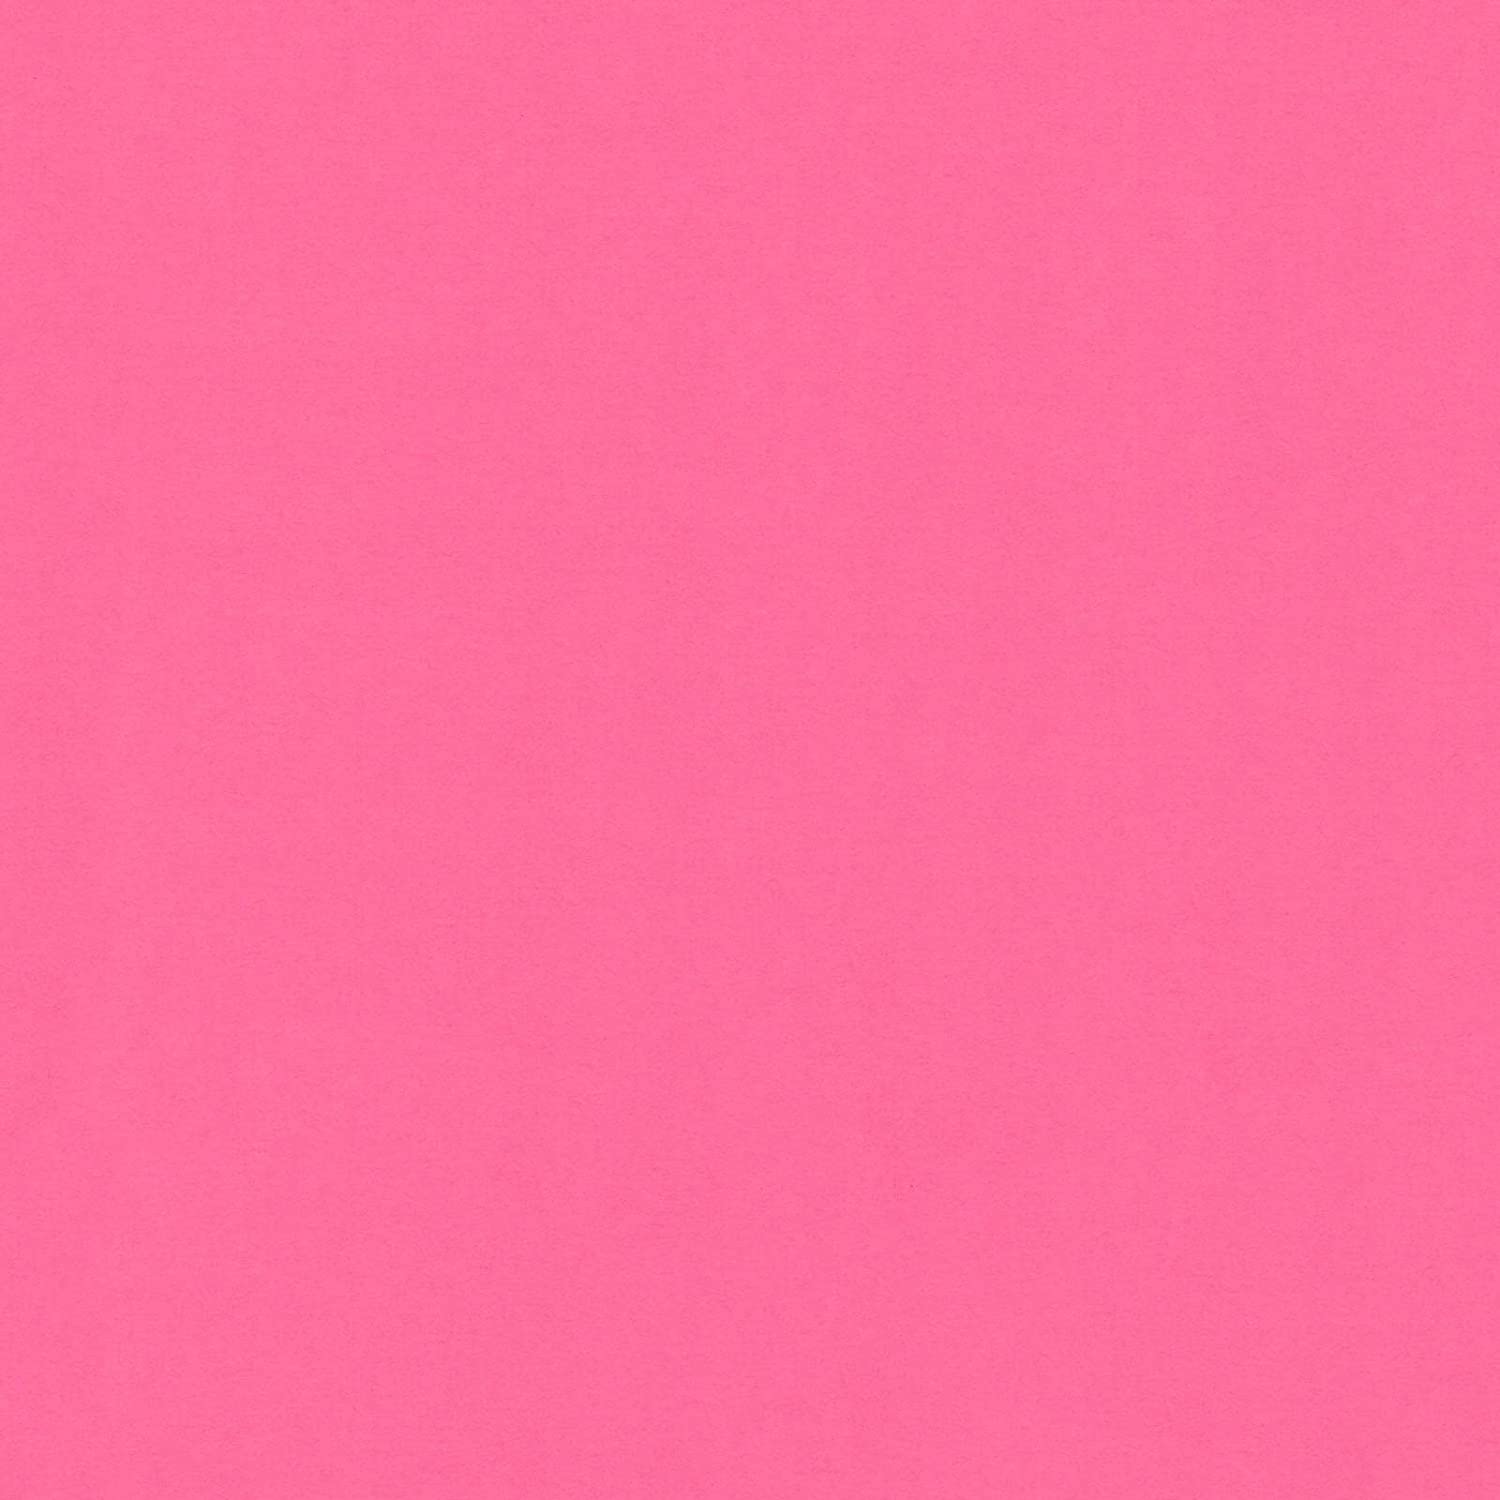 25 Sheets 65Lb Cover Very Berry Pink Cardstock 12 x 12 inch